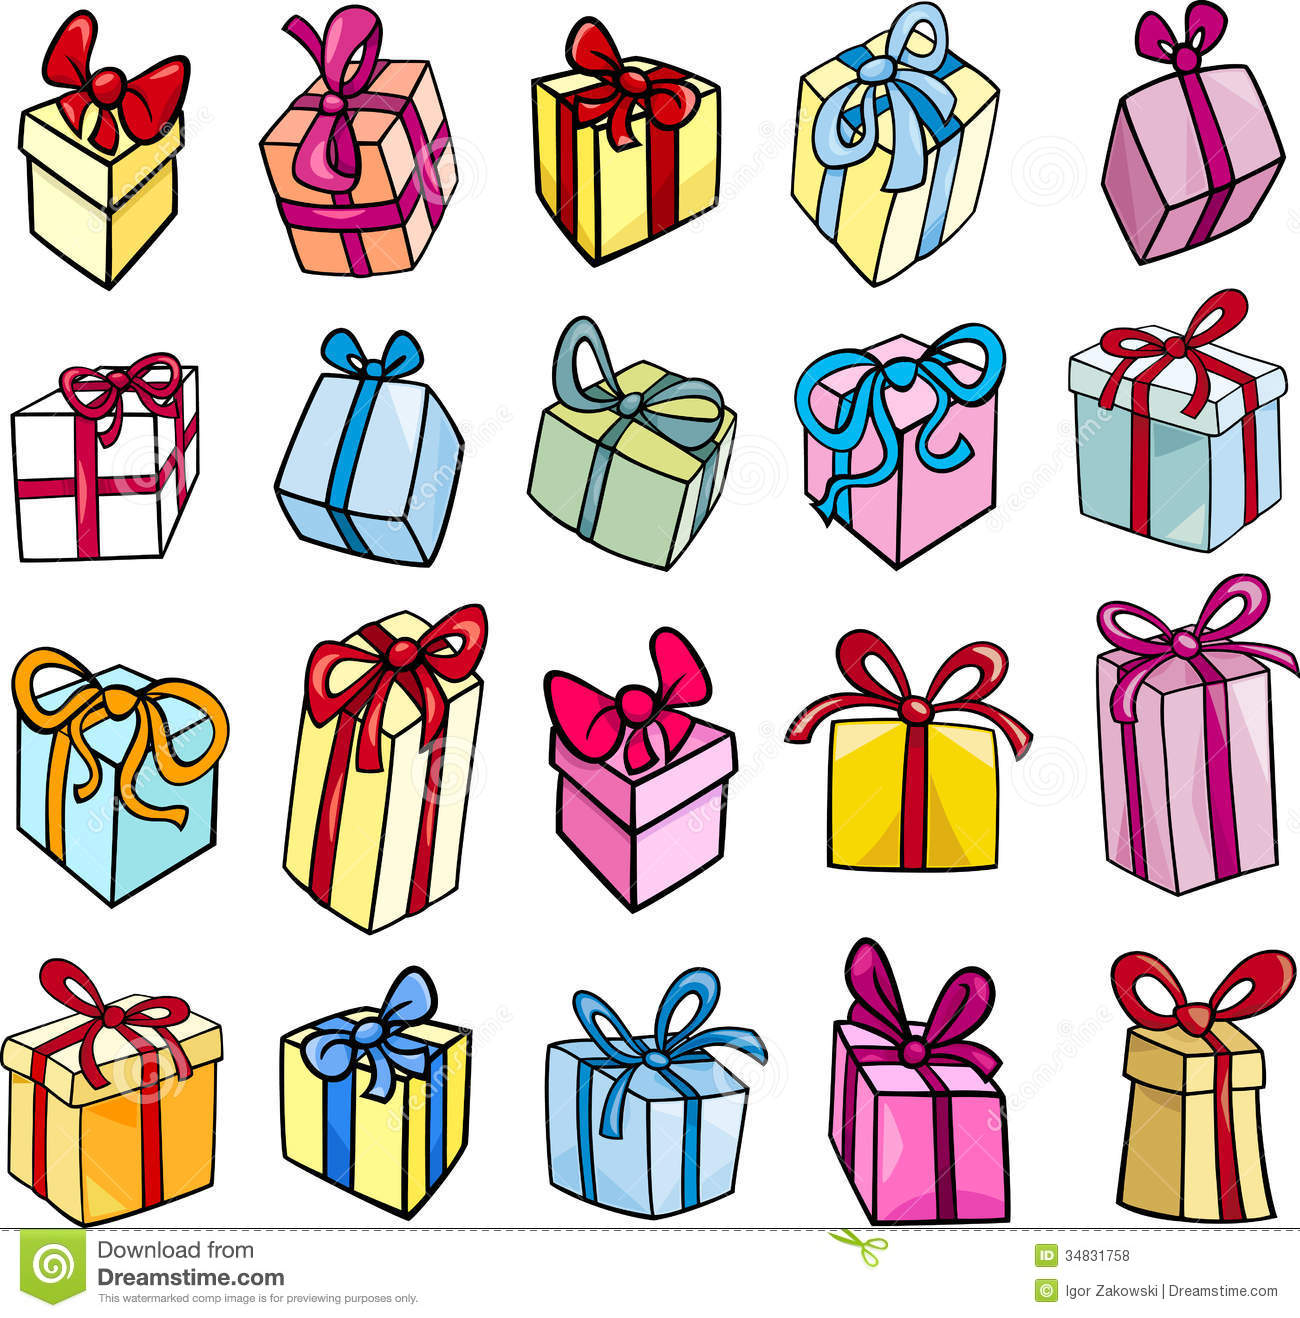 Christmas Toys Cartoon : Christmas or birthday gift clip art set stock vector